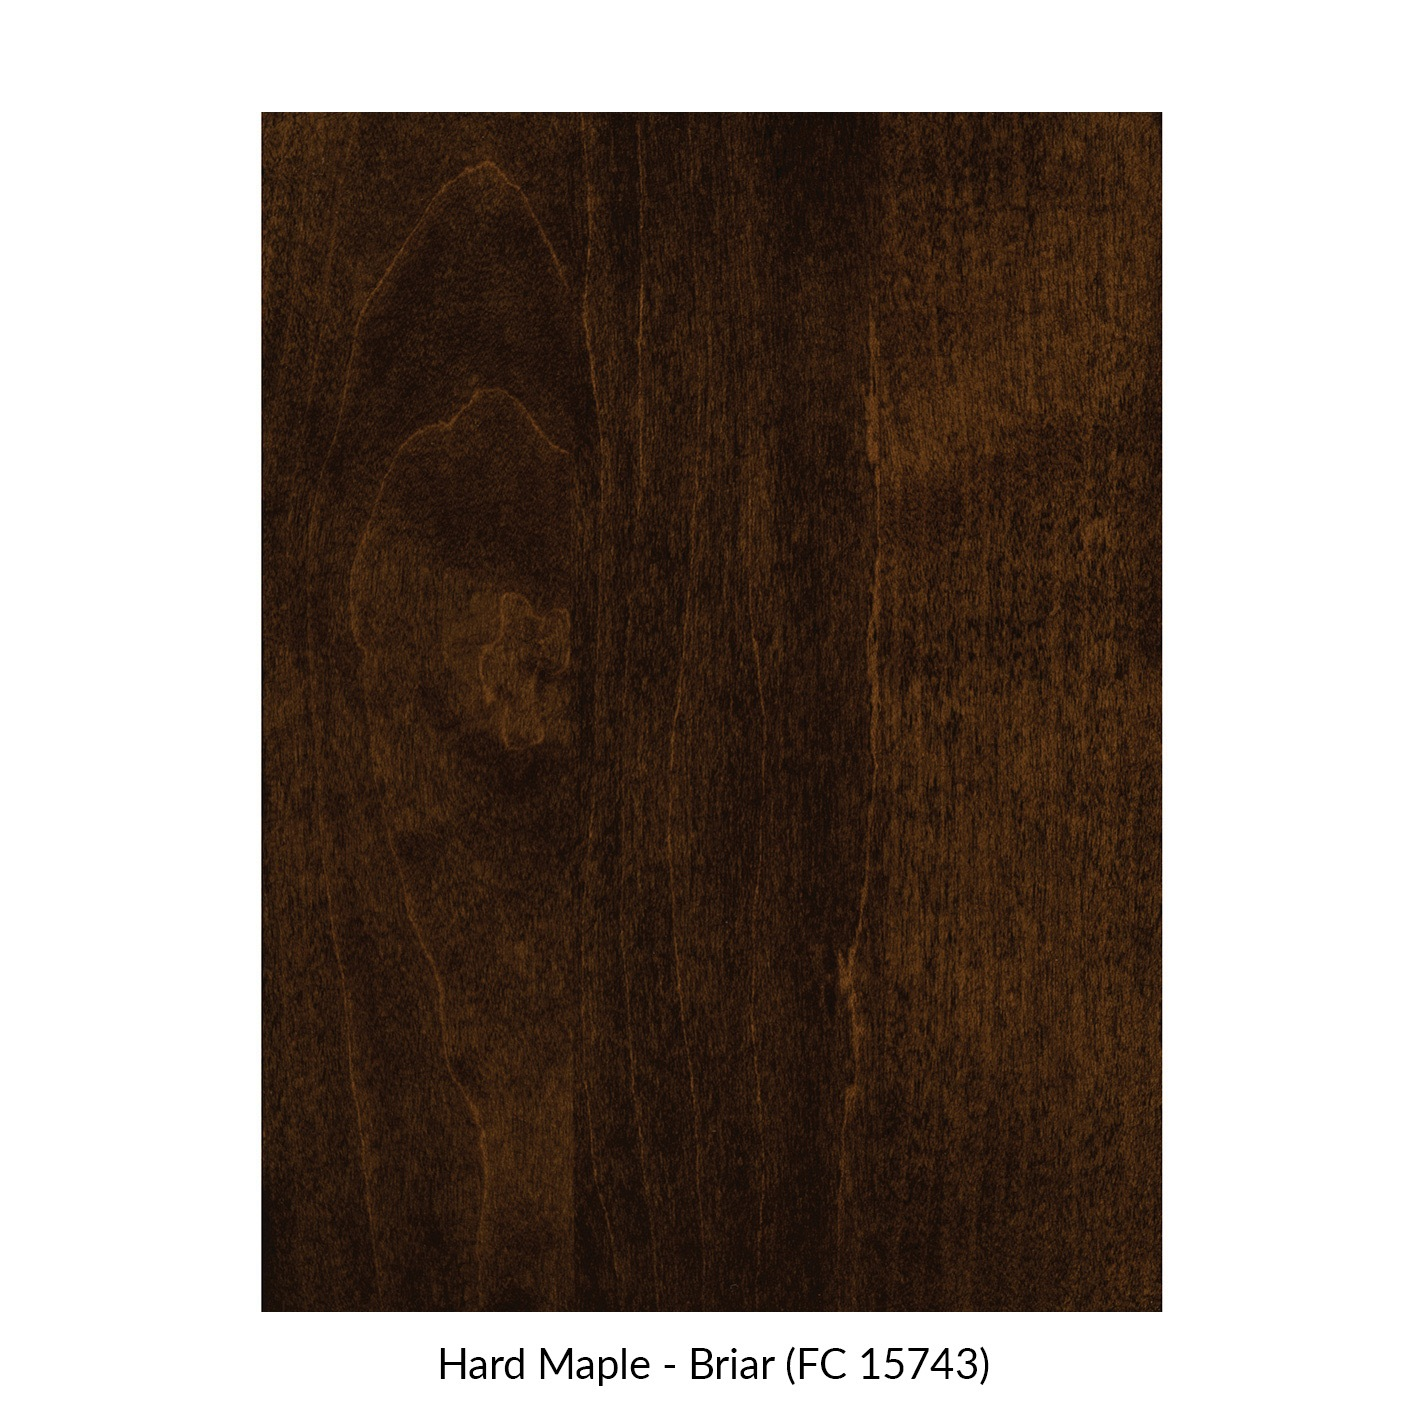 spectrum-hard-maple-briar-fc-15743.jpg